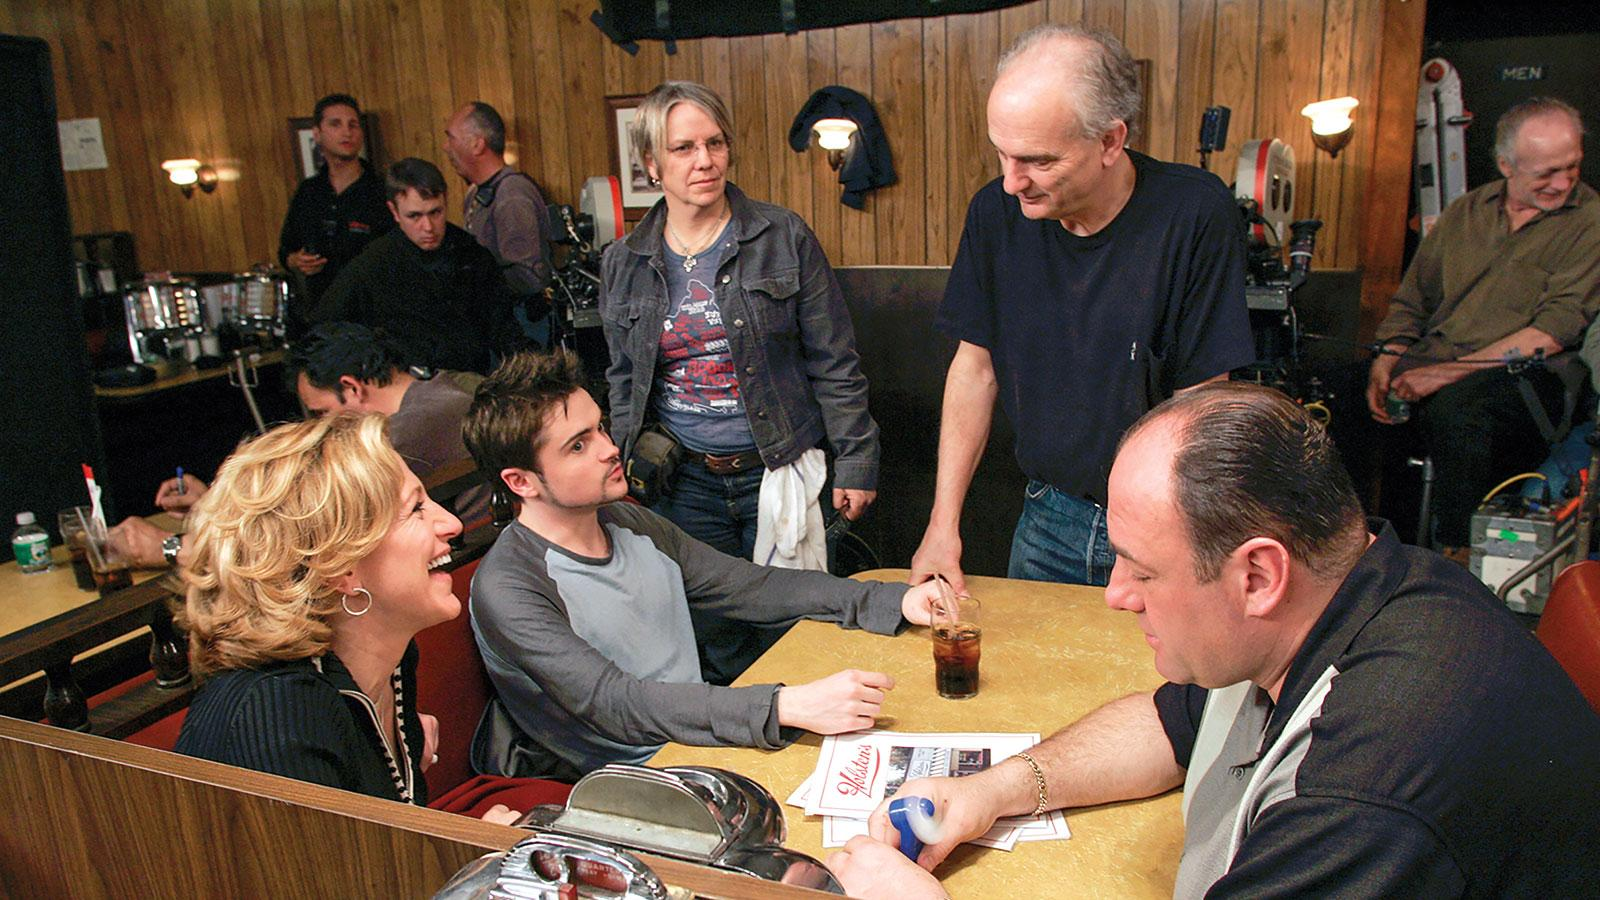 David Chase (standing, in black shirt) directing Edie Falco, Robert Iler and Gandolfini in the controversial final episode that aired on June 10, 2007.